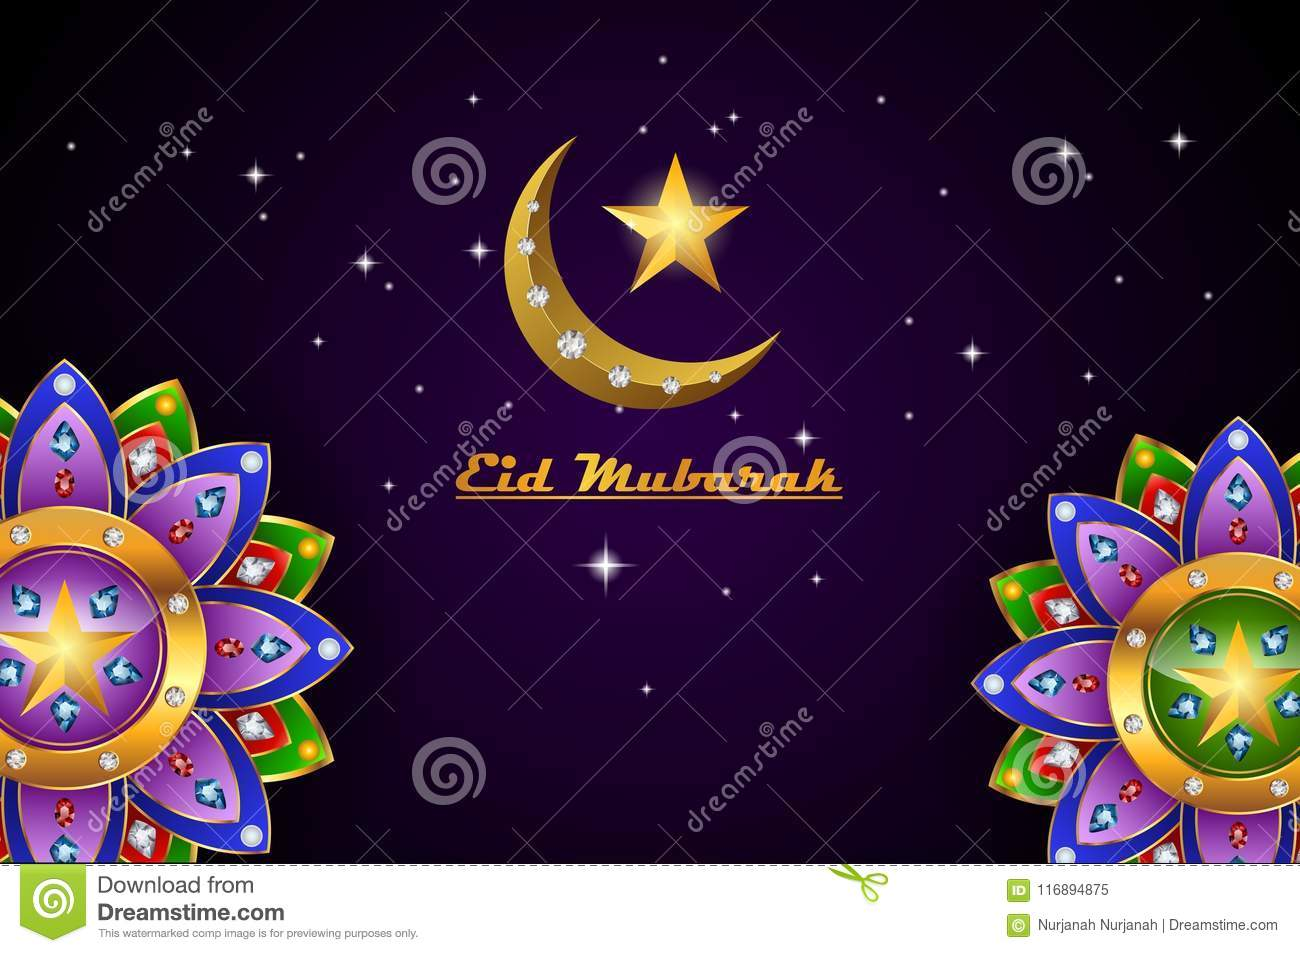 Eid mubarak greeting background islamic with gold patterned stock download eid mubarak greeting background islamic with gold patterned stock vector illustration of islam m4hsunfo